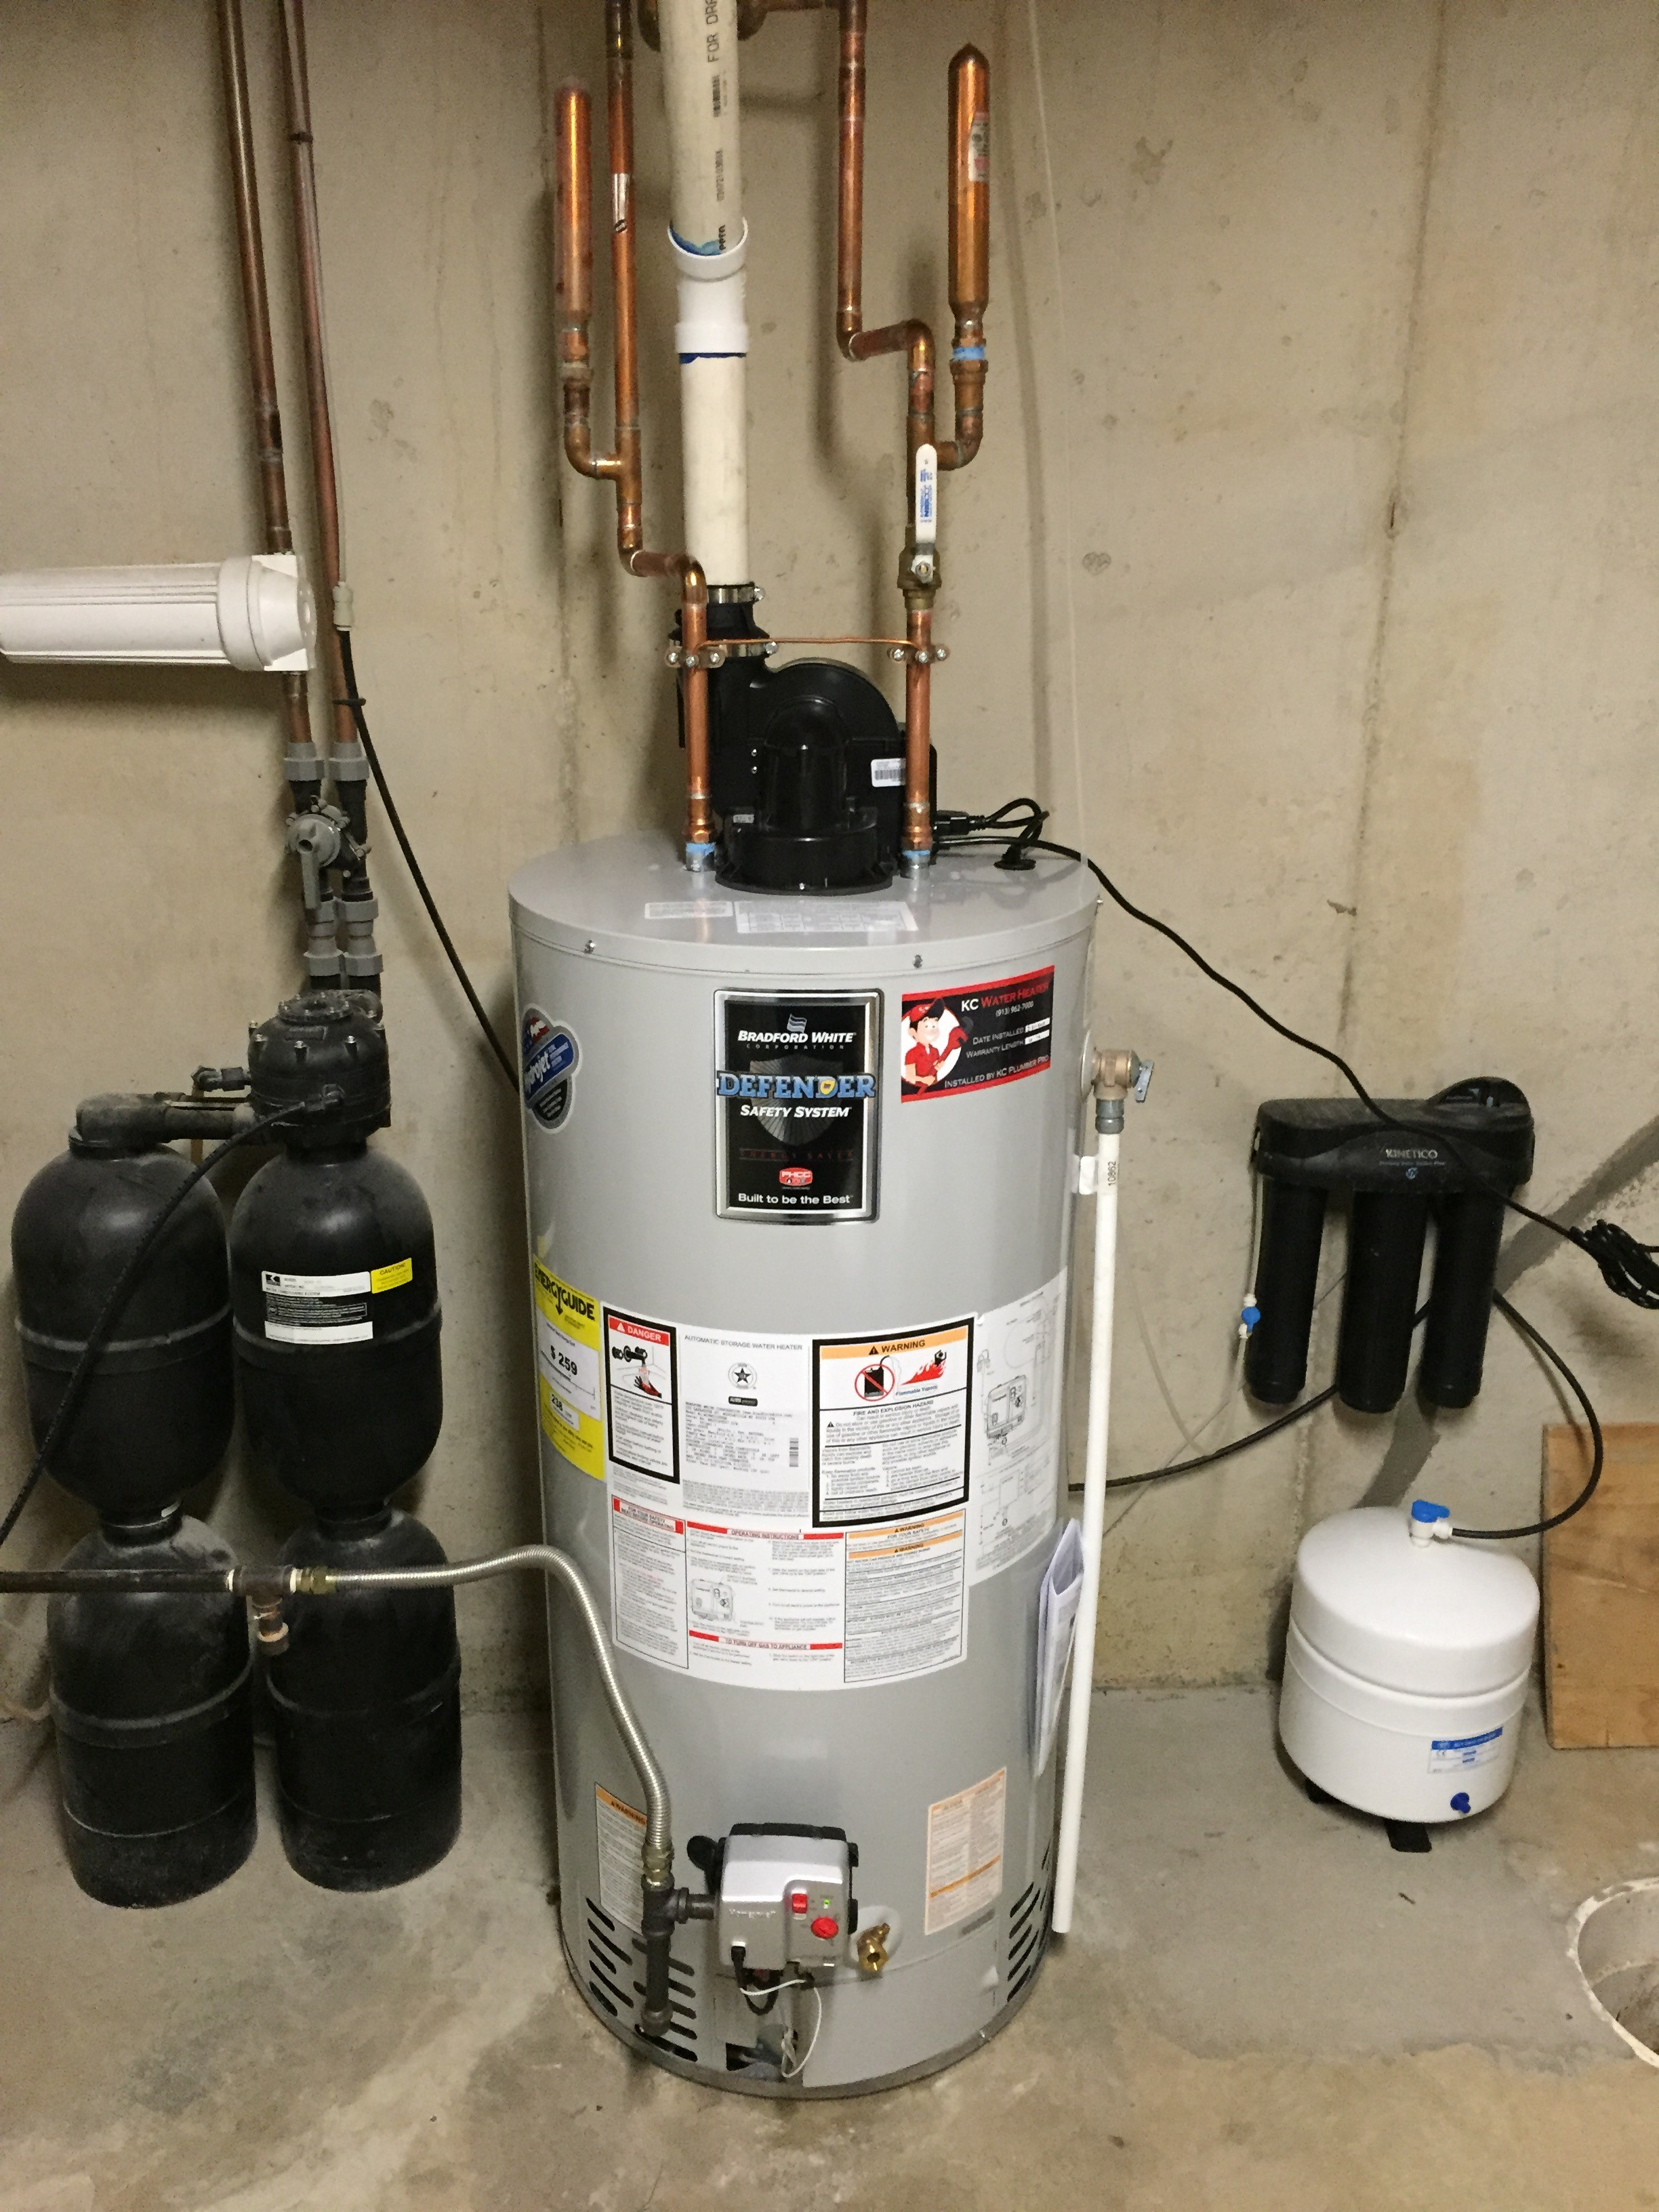 Gas Power Vent Water Heater Wiring Diagram 42 Instant Bradford White E1428983586196 Heaters Kansas City Ge